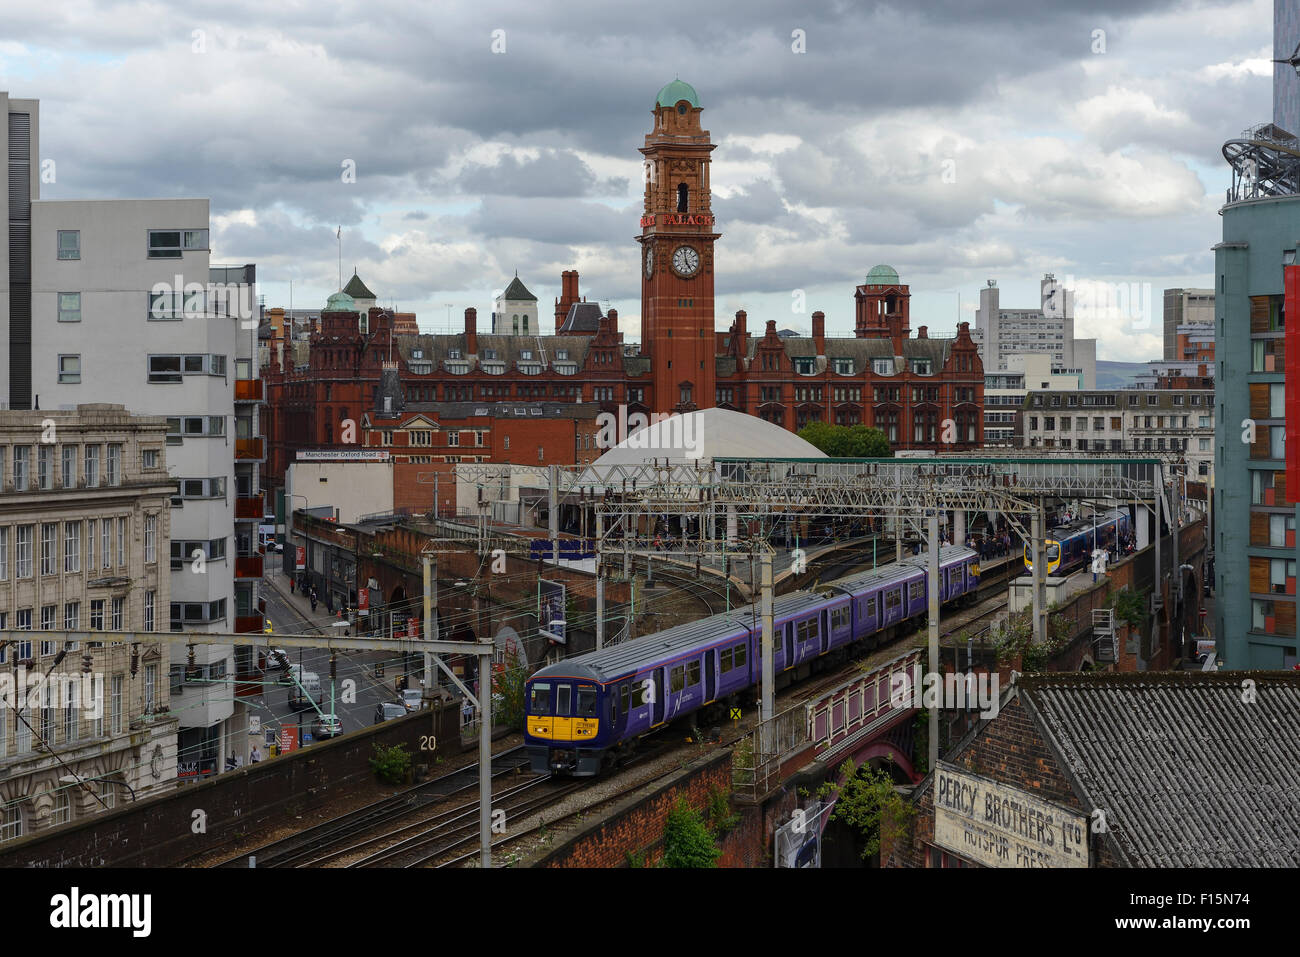 A Northern Rail commuter train leaves Manchester Oxford Road railway station in Manchester city centre UK - Stock Image